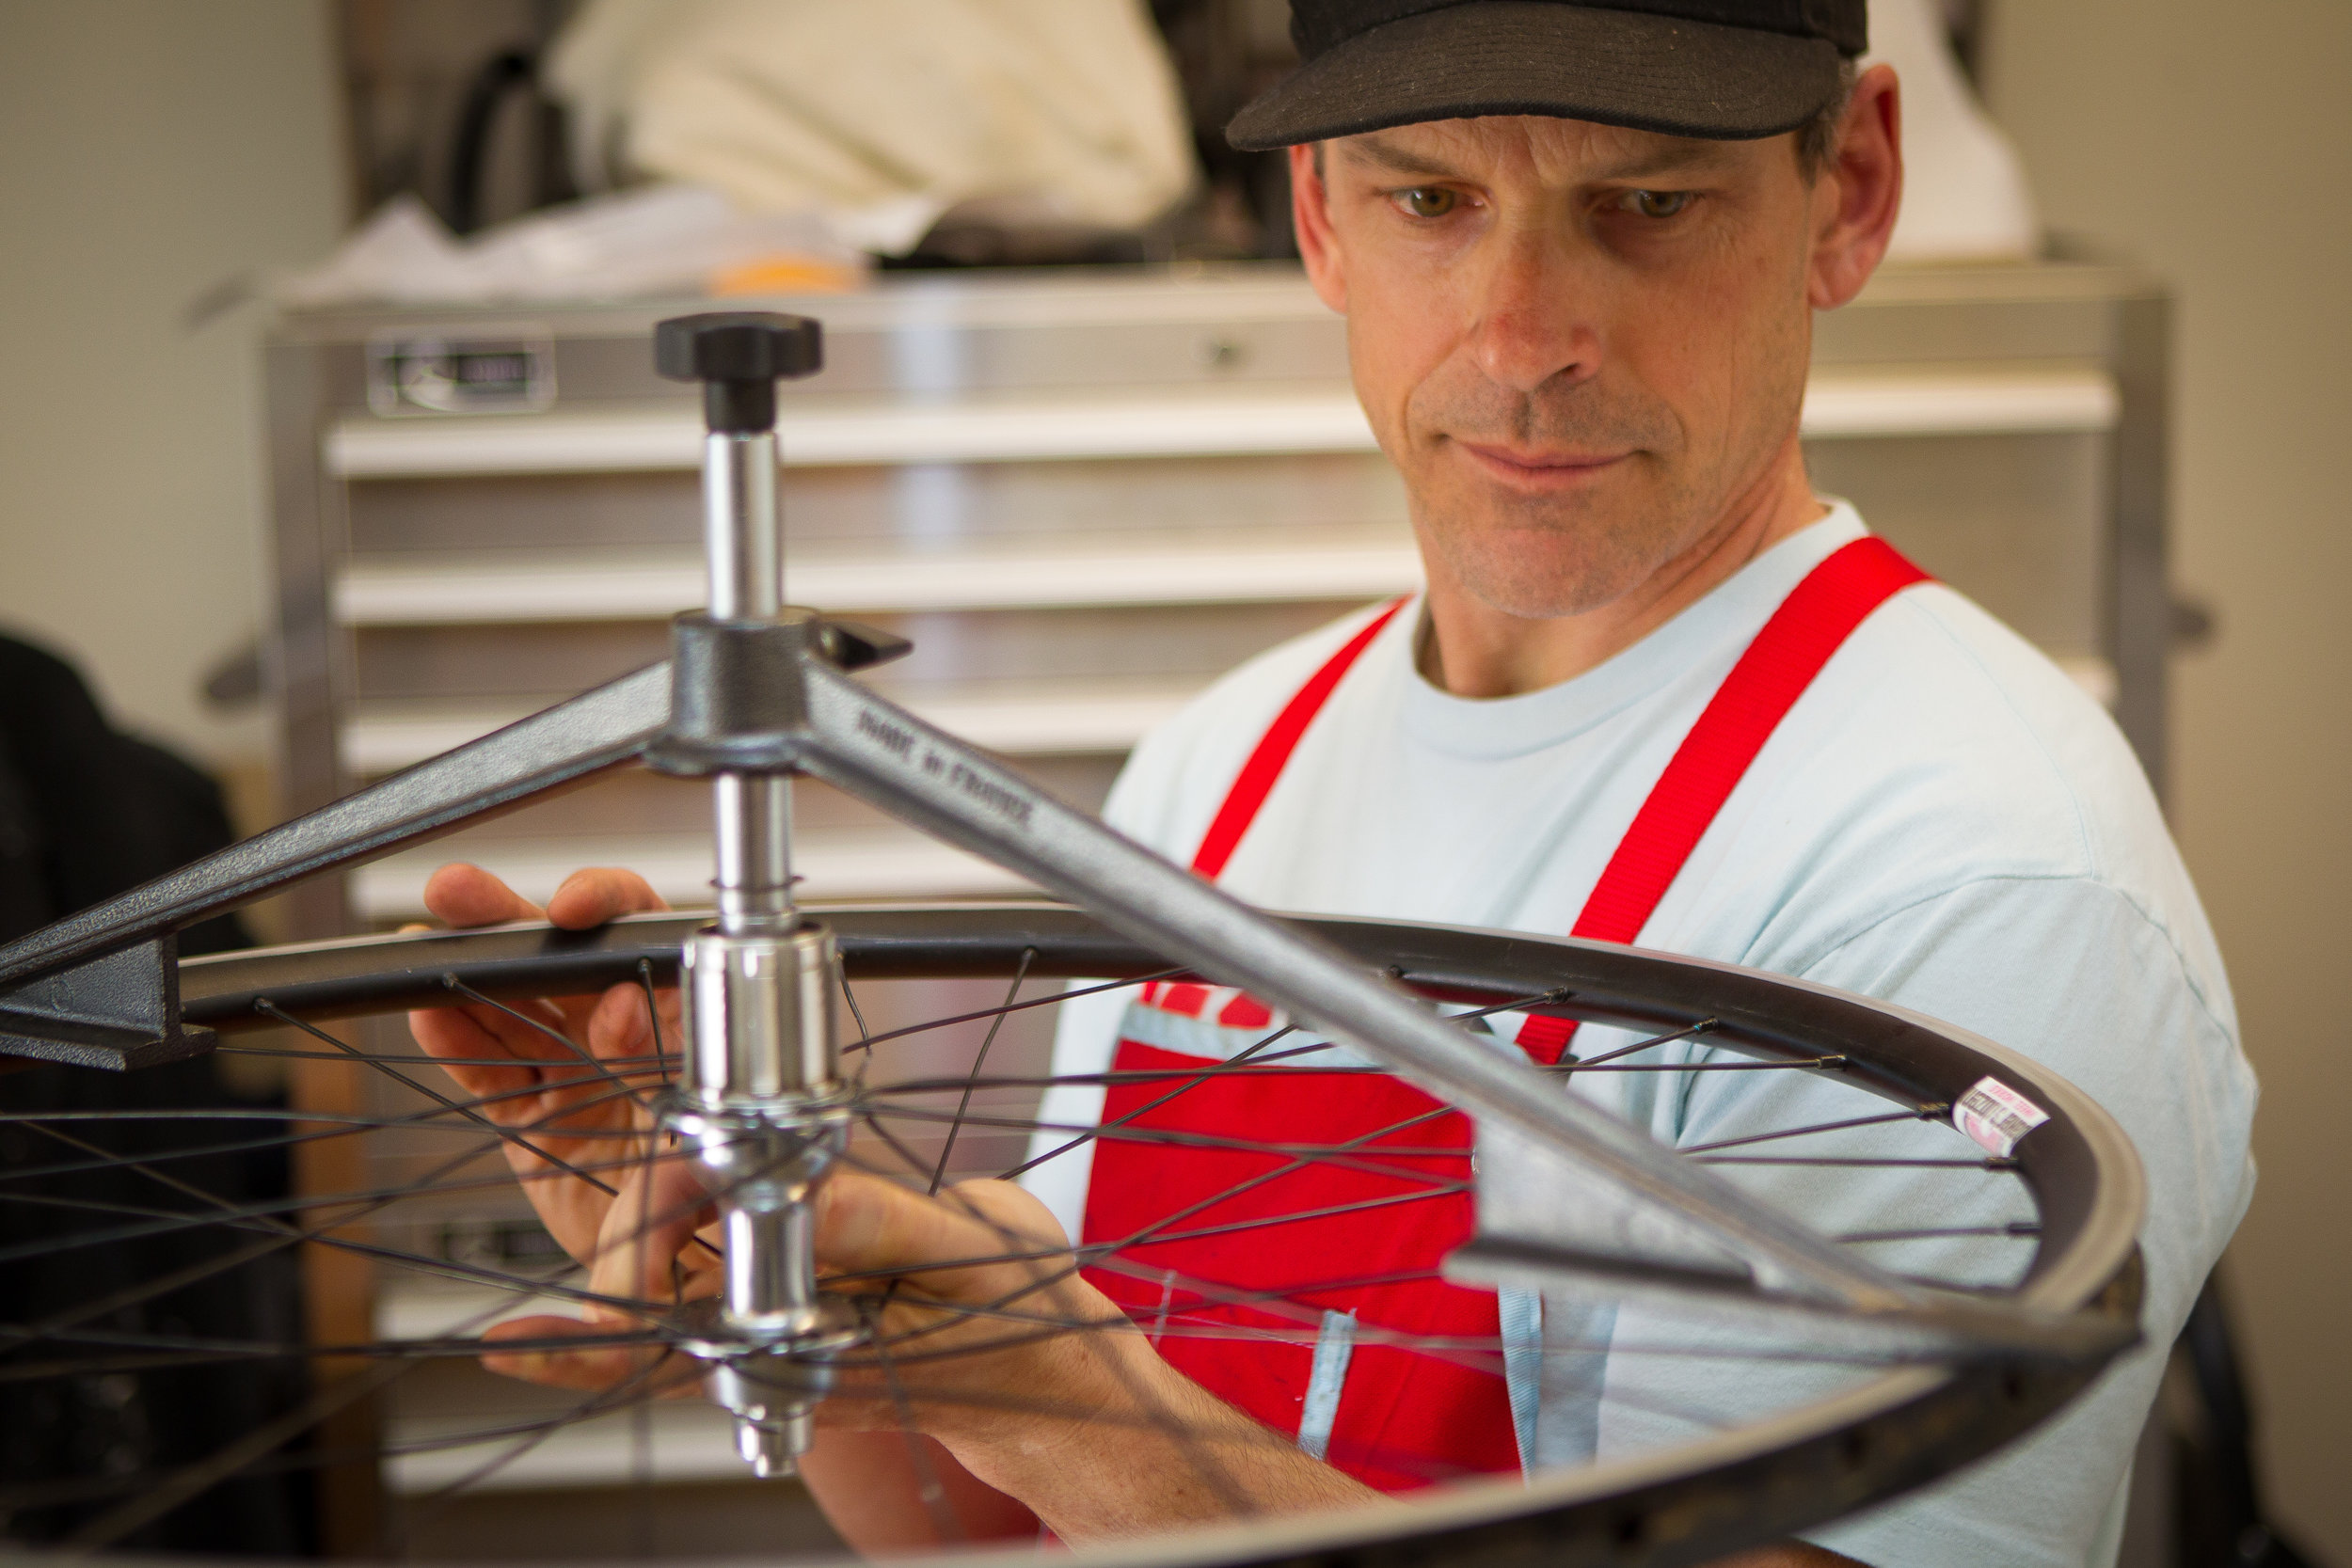 Baker's Dozen Wheel Works started from a passion for wheel building... - I'm a one person operation, currently running the shop out of my garage, like a true artisan.